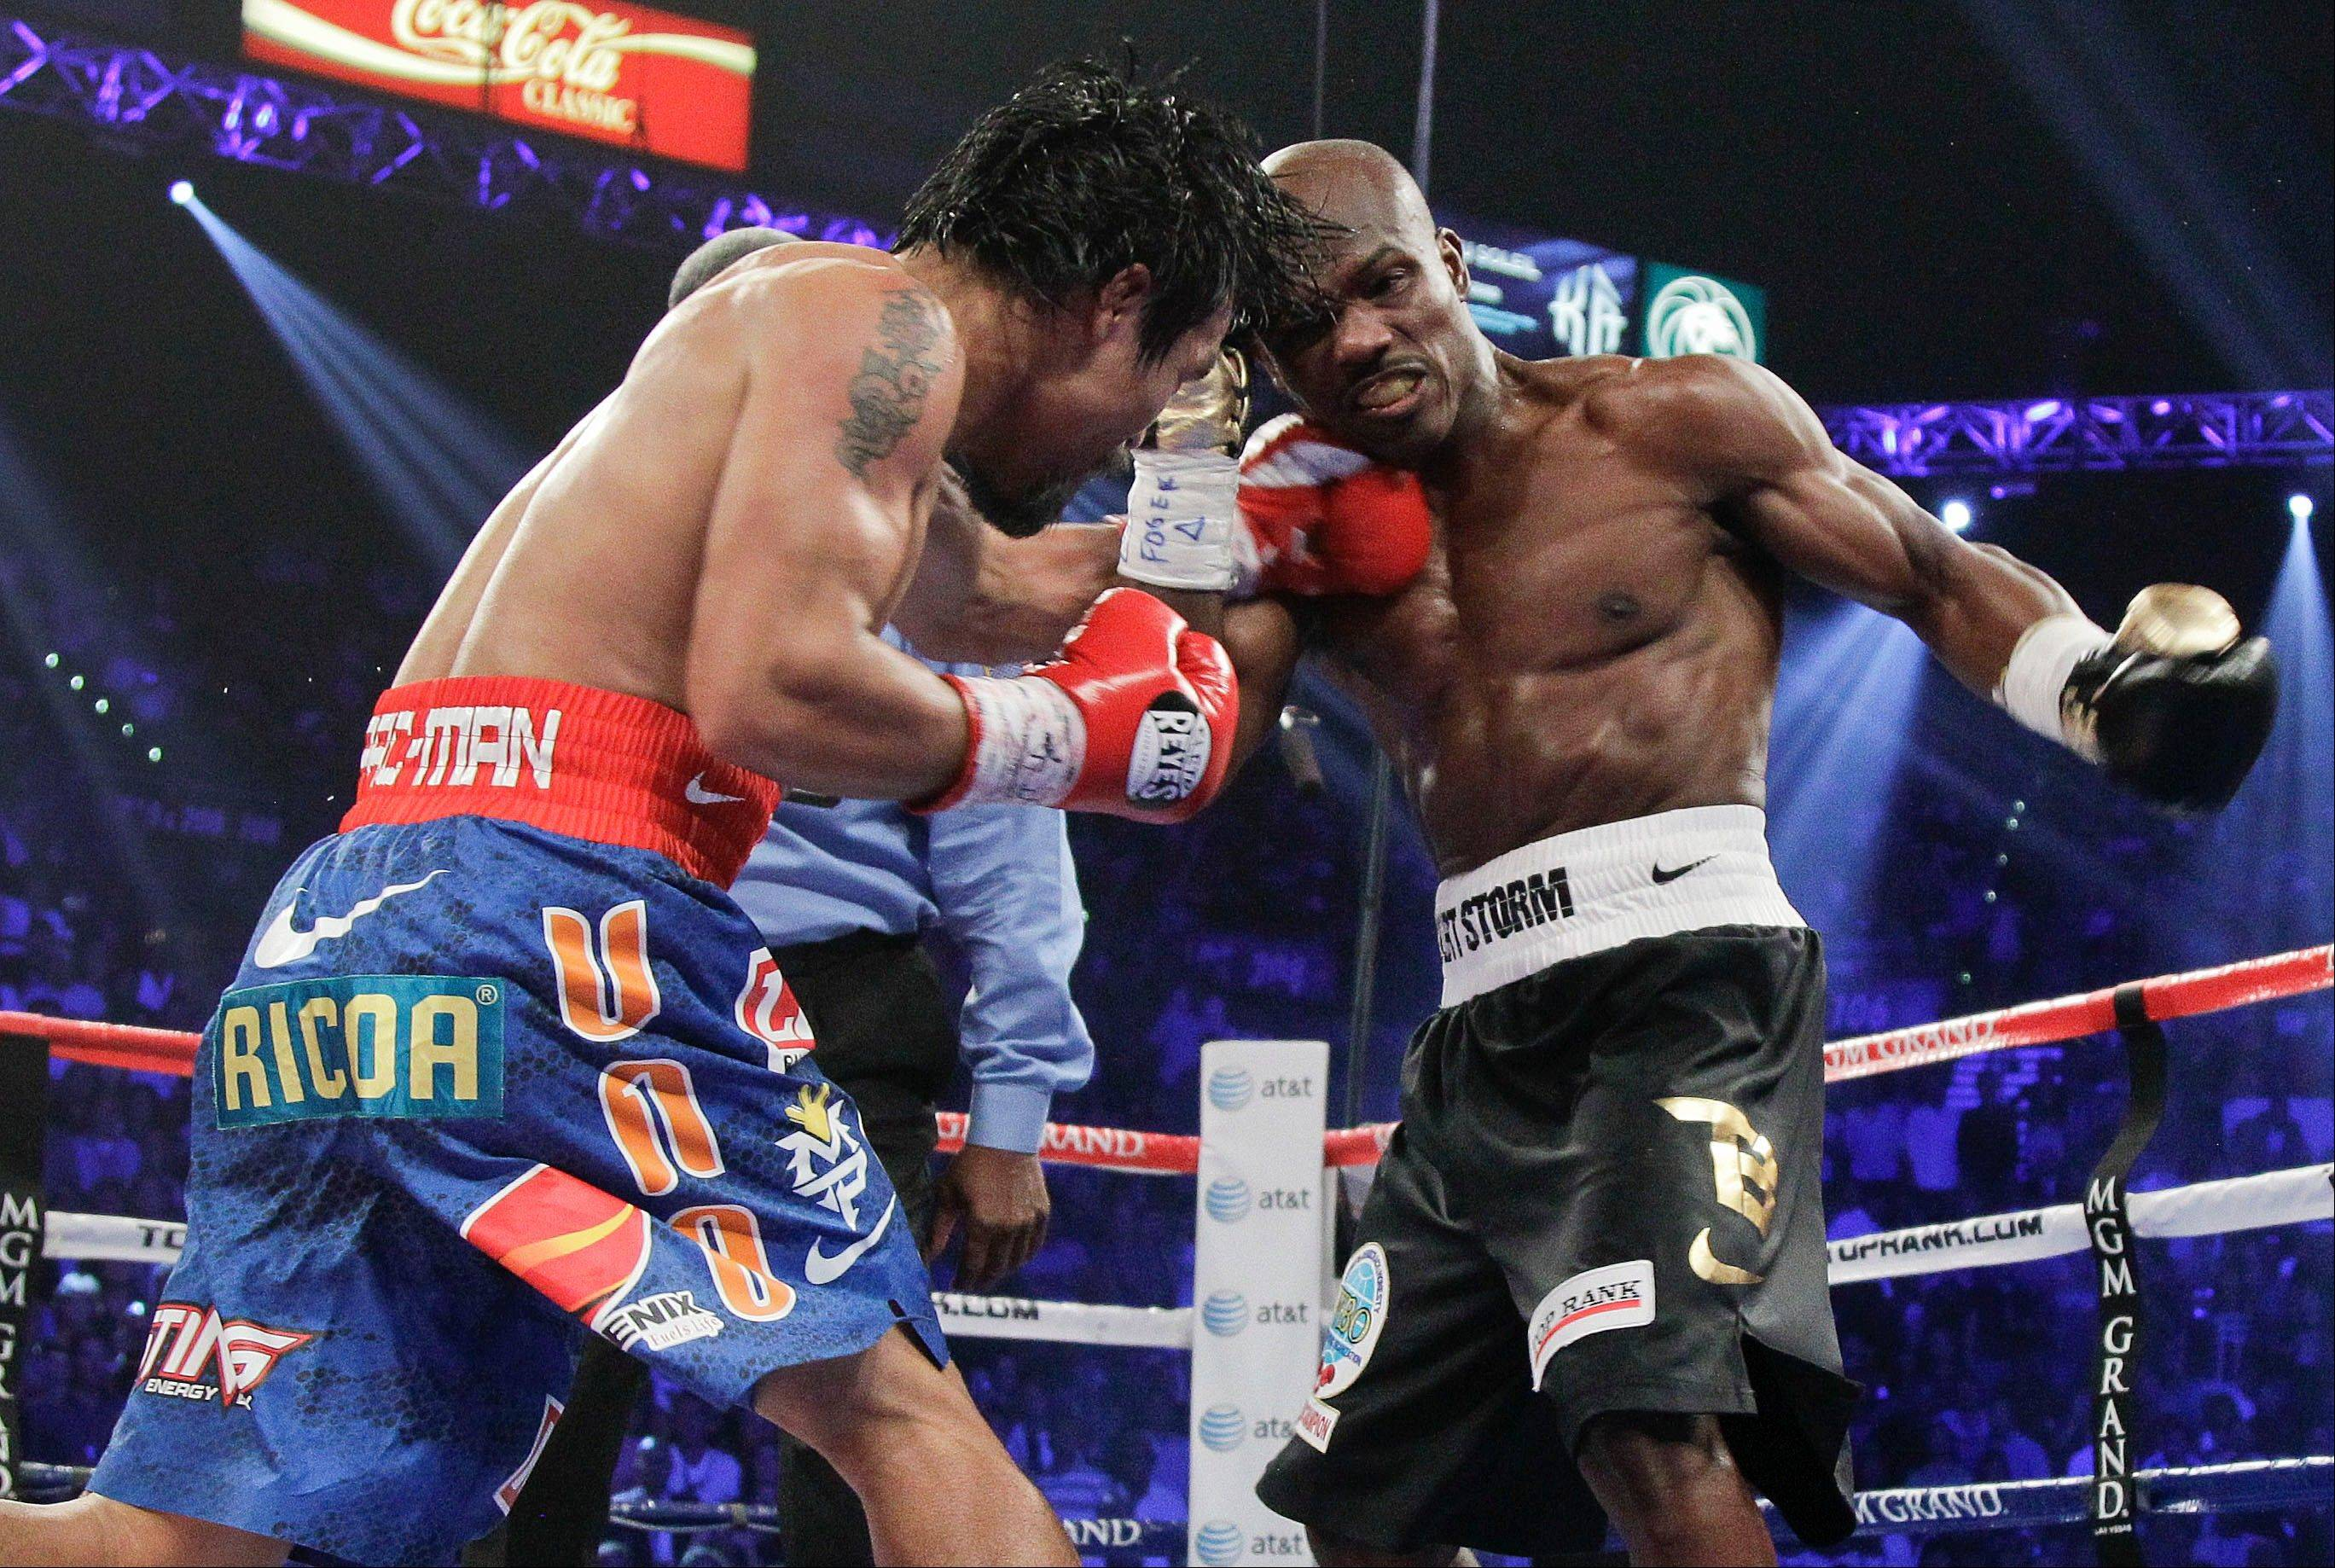 The WBO announced Wednesday that it will review Timothy Bradley's controversial split-decision win over Manny Pacquiao, left, in their WBO world welterweight title fight.